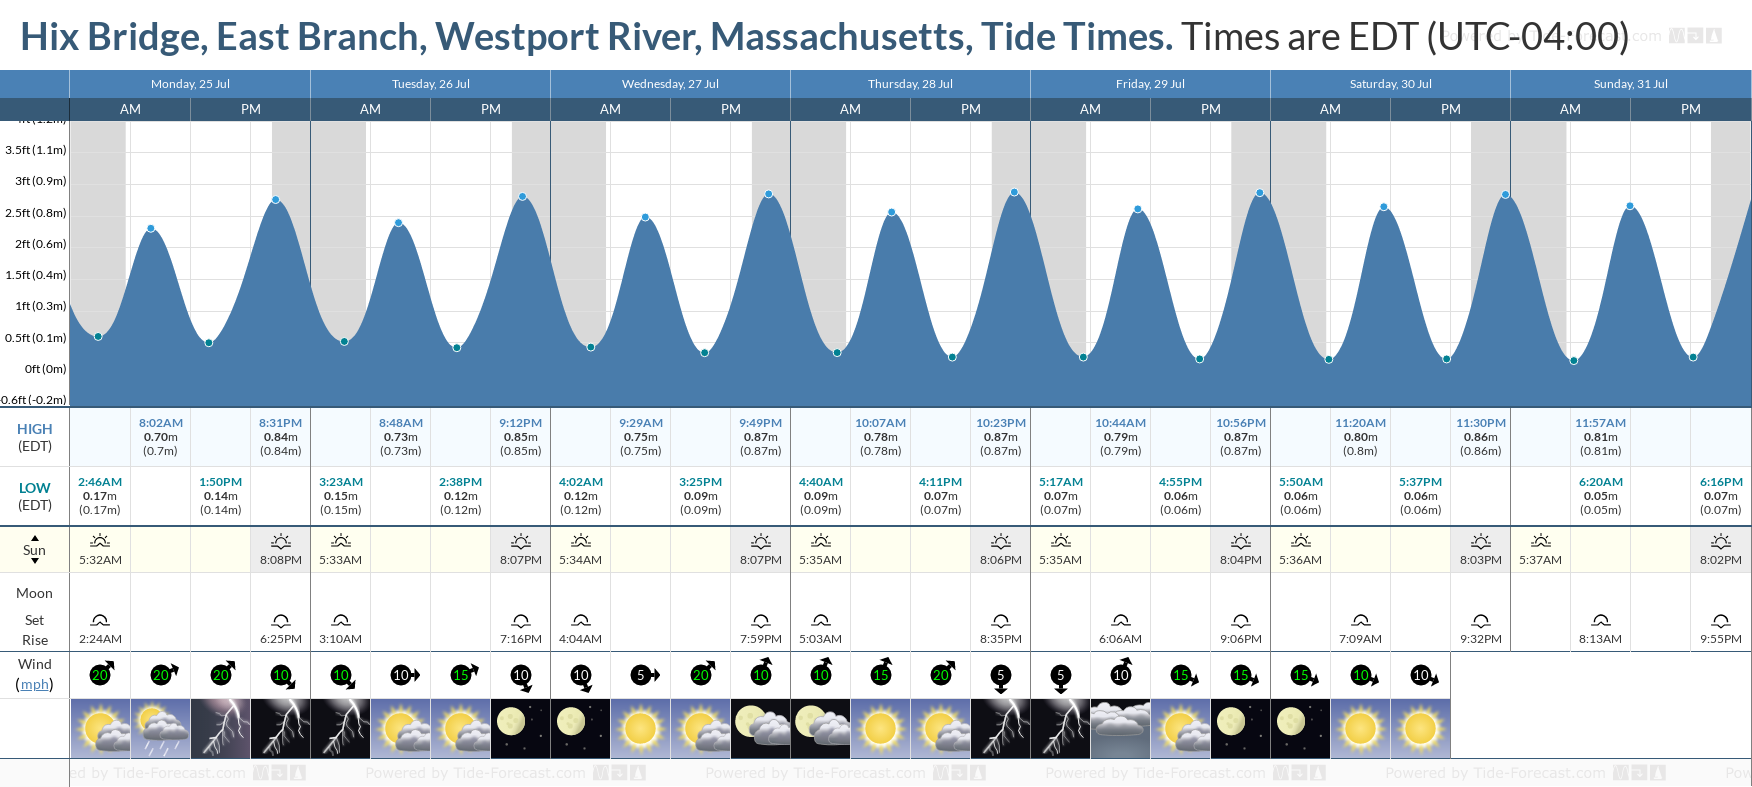 Hix Bridge, East Branch, Westport River, Massachusetts Tide Chart including high and low tide tide times for the next 7 days